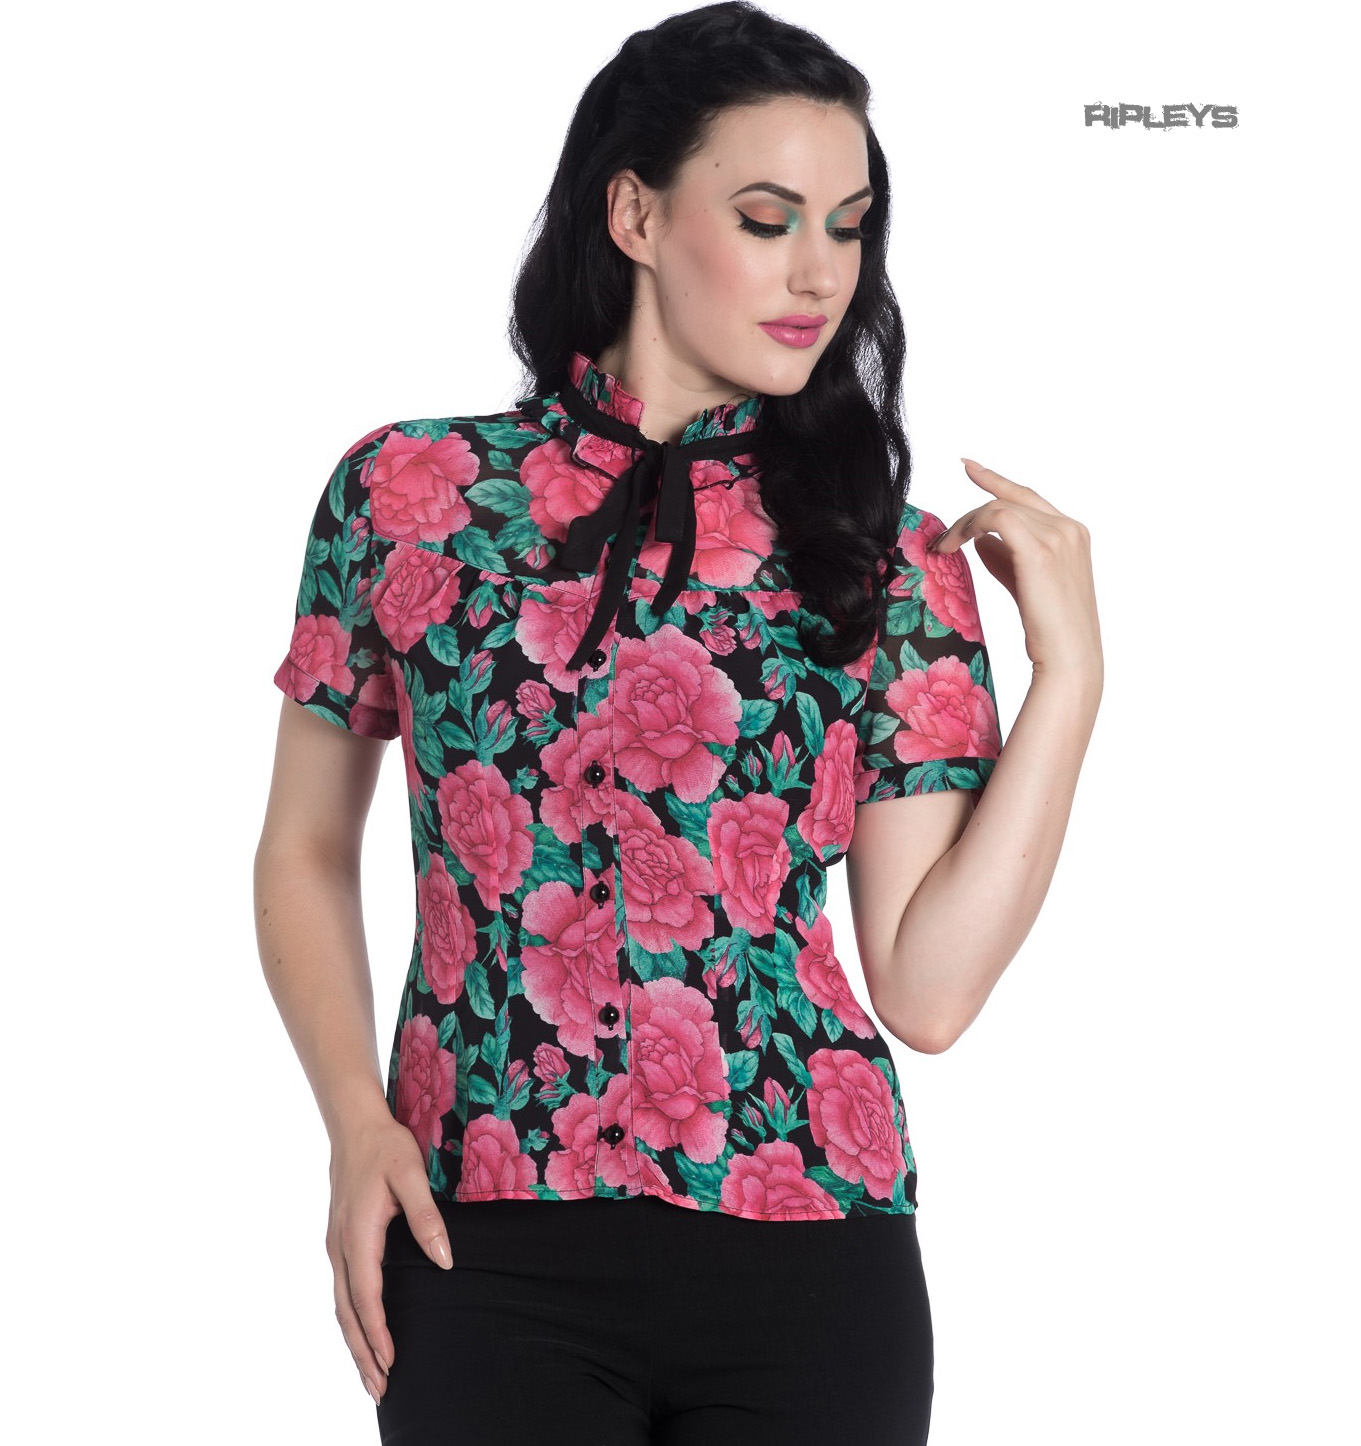 Hell-Bunny-Shirt-Top-Flowers-Roses-EDEN-ROSE-Black-Pink-Blouse-All-Sizes thumbnail 2